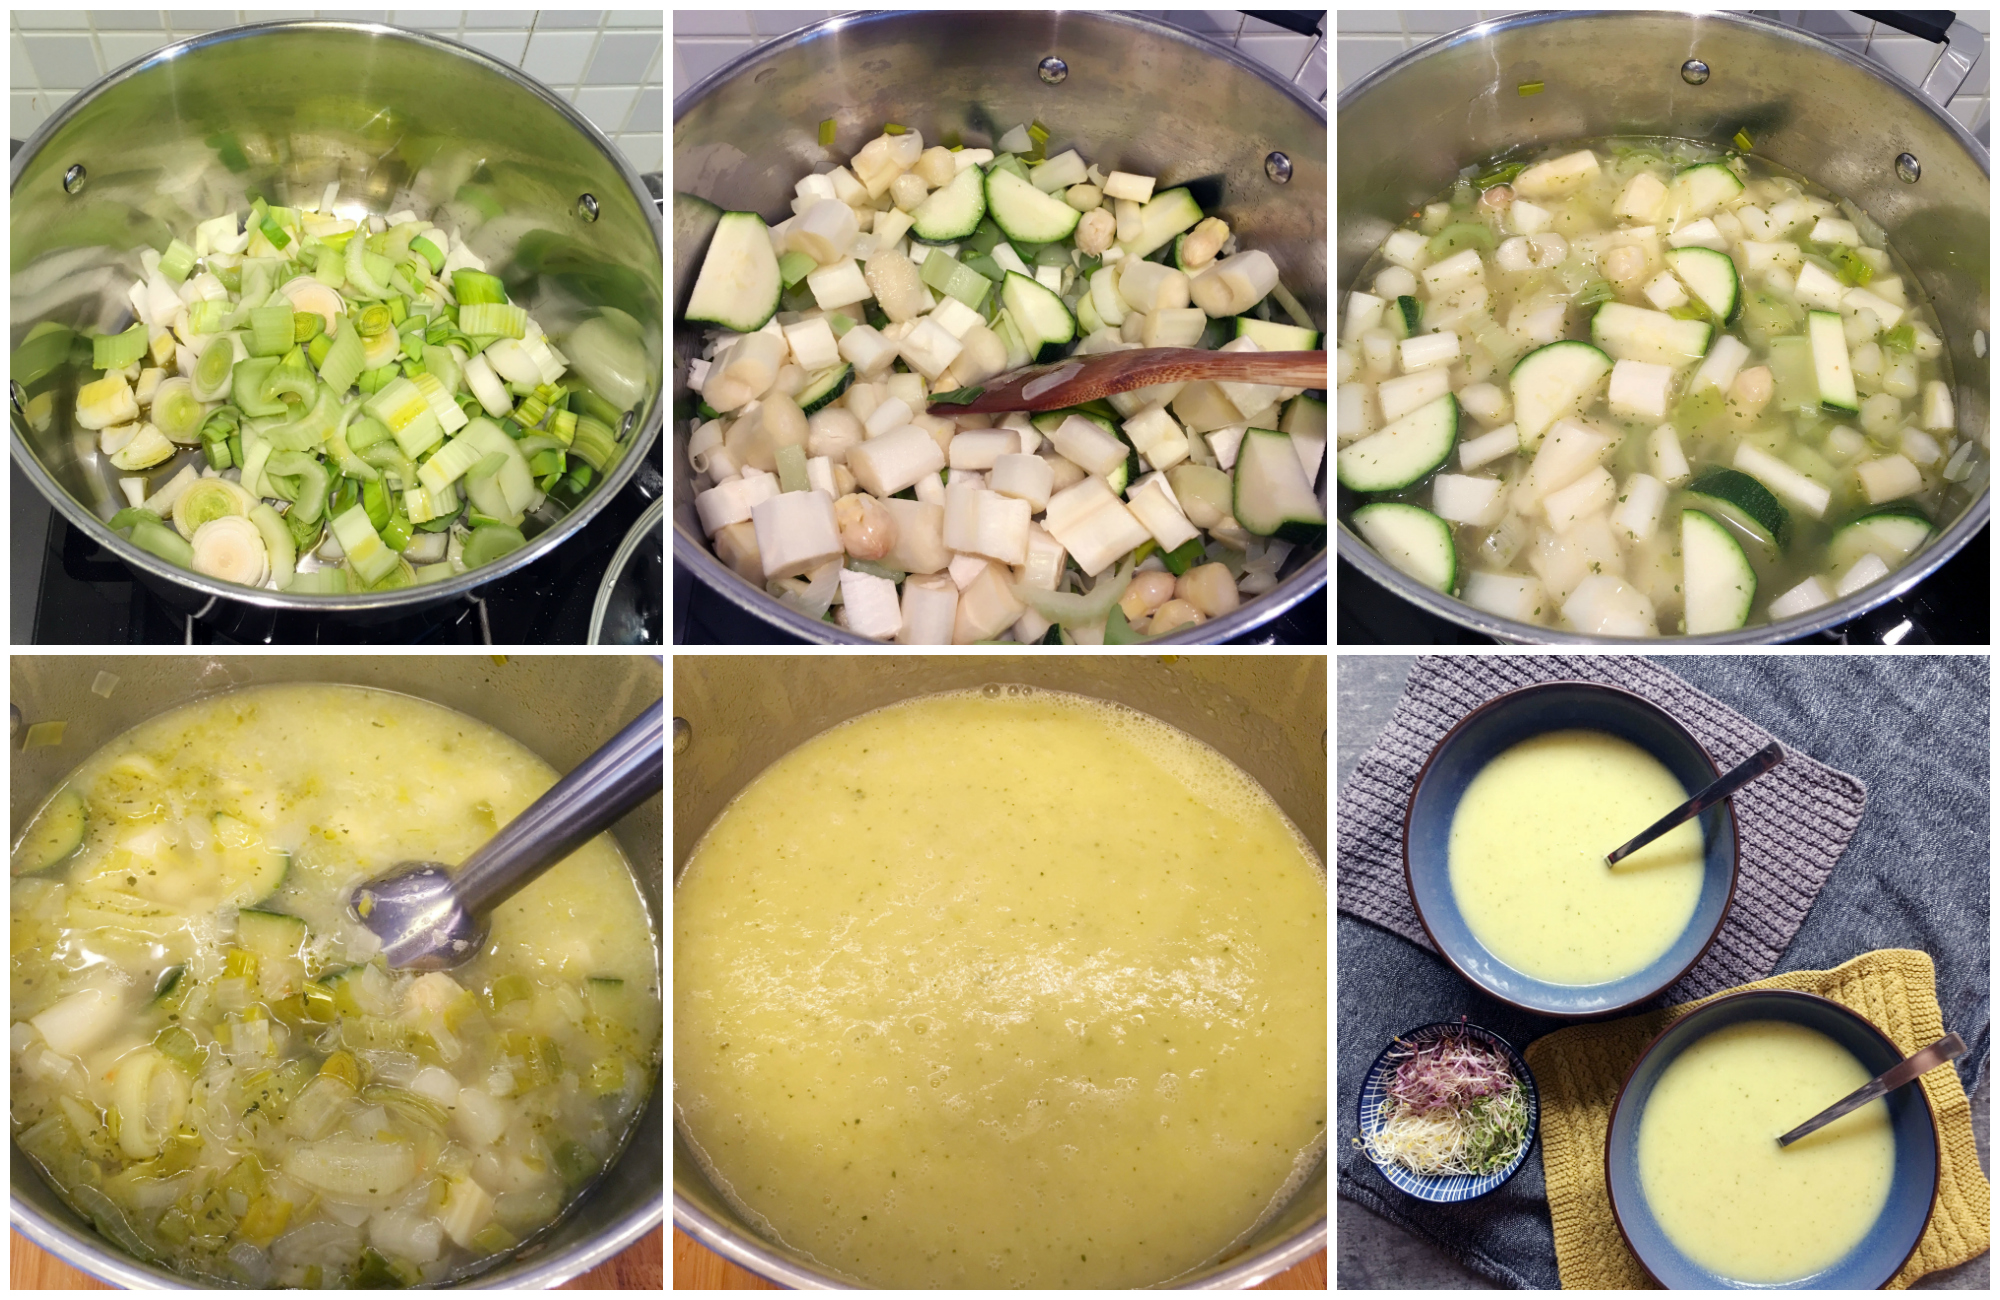 Low Histamine Asparagus Soup - Step by Step